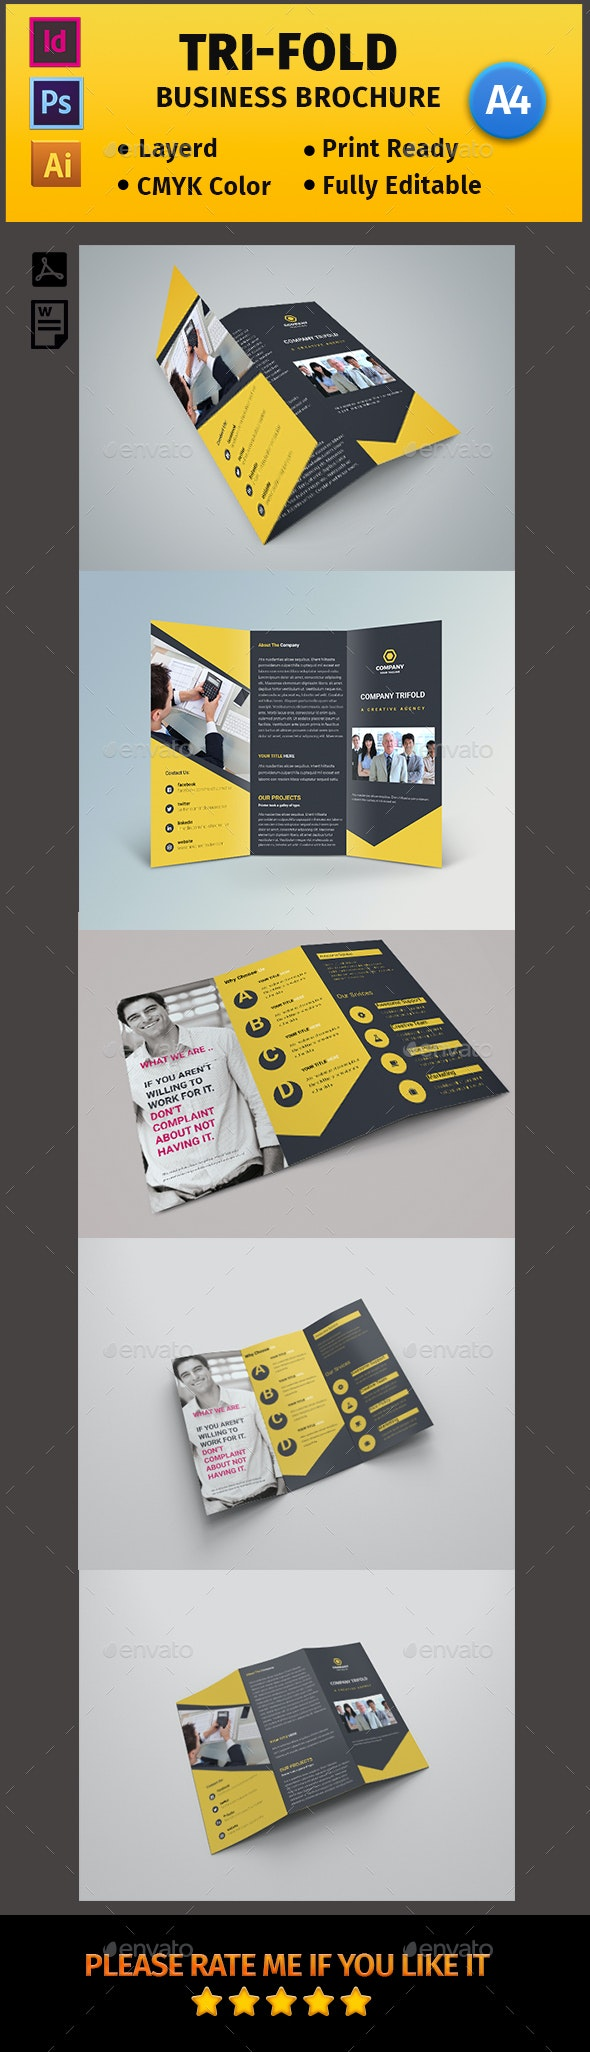 Corporate Business Tri-fold Brochure #06 - Corporate Flyers